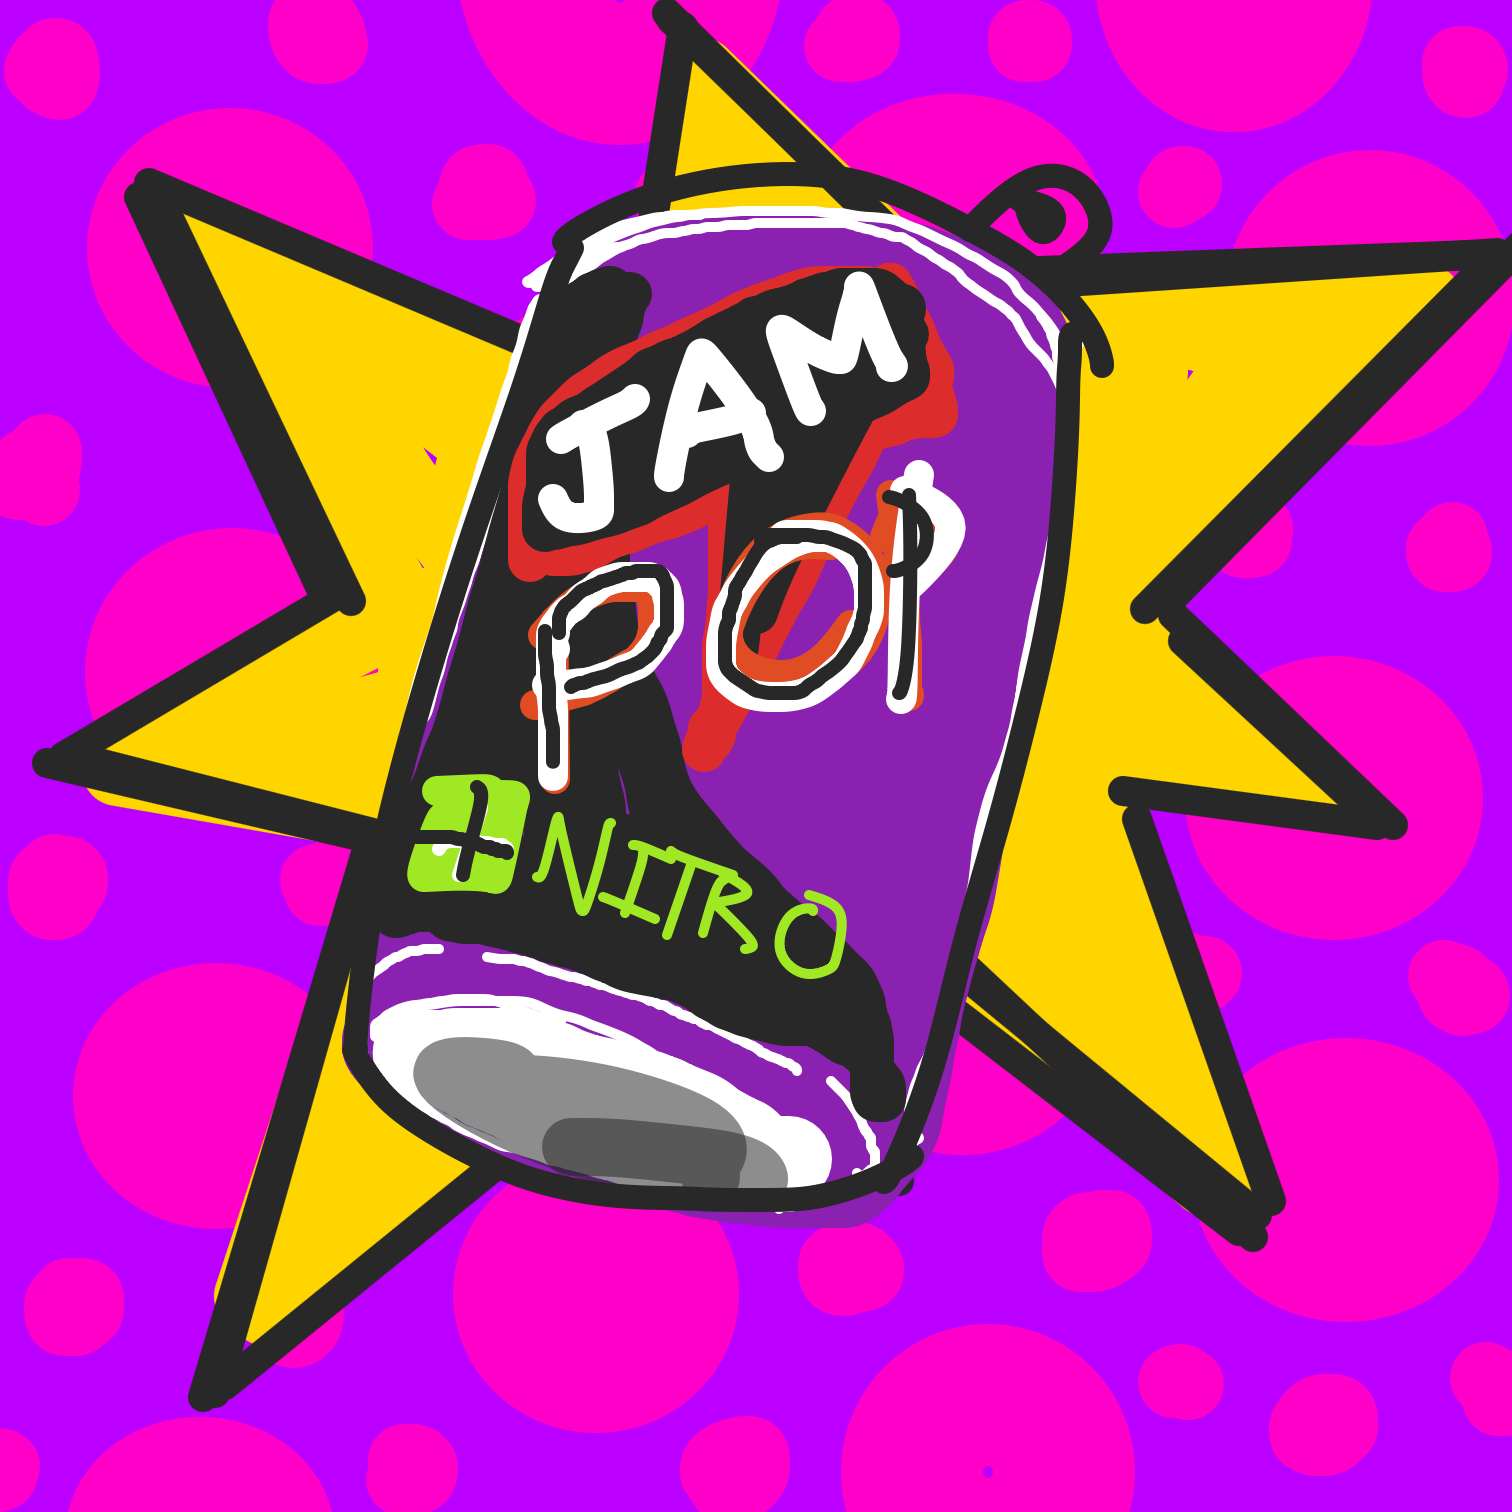 First panel in Jam pop nitro  drawn in our free online drawing game